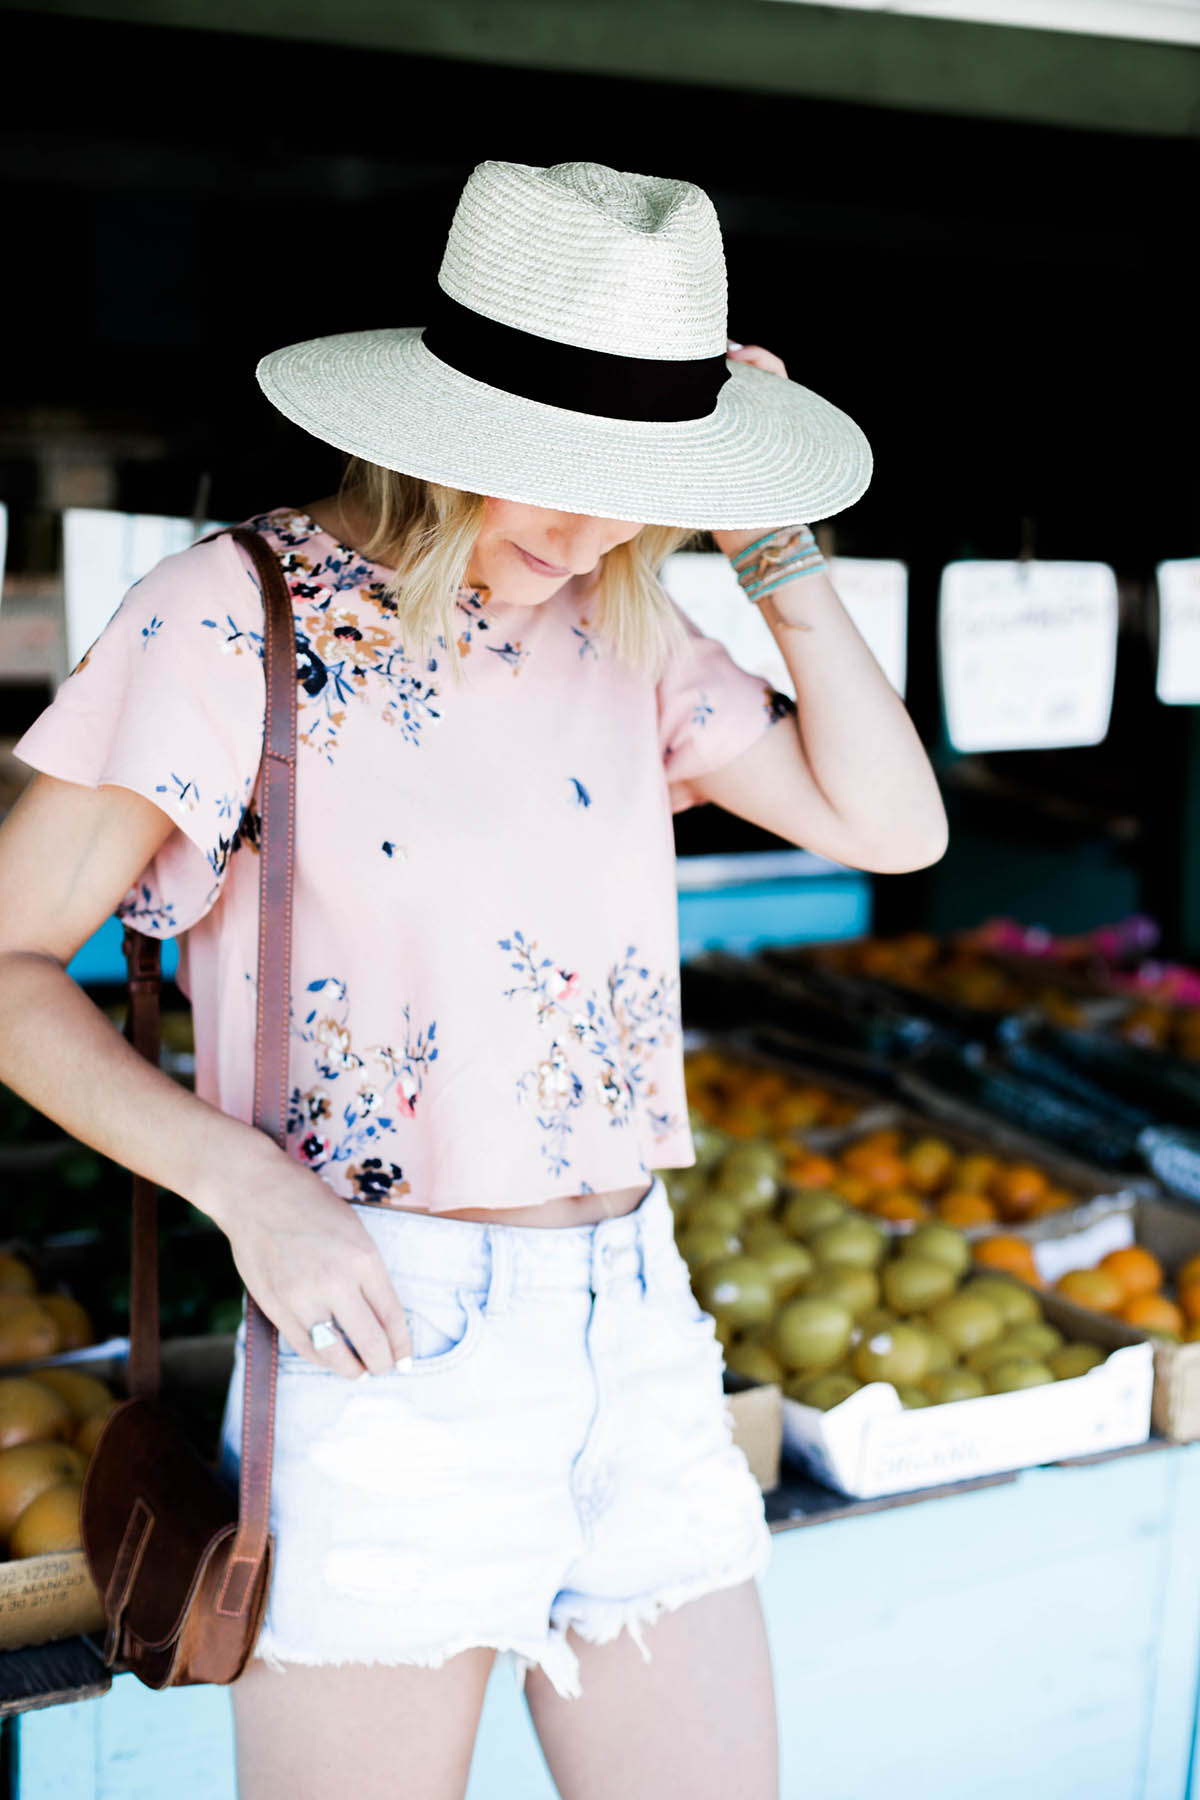 Amanda Holstein in Urban Outfitters crop top, panama hat, and denim shorts